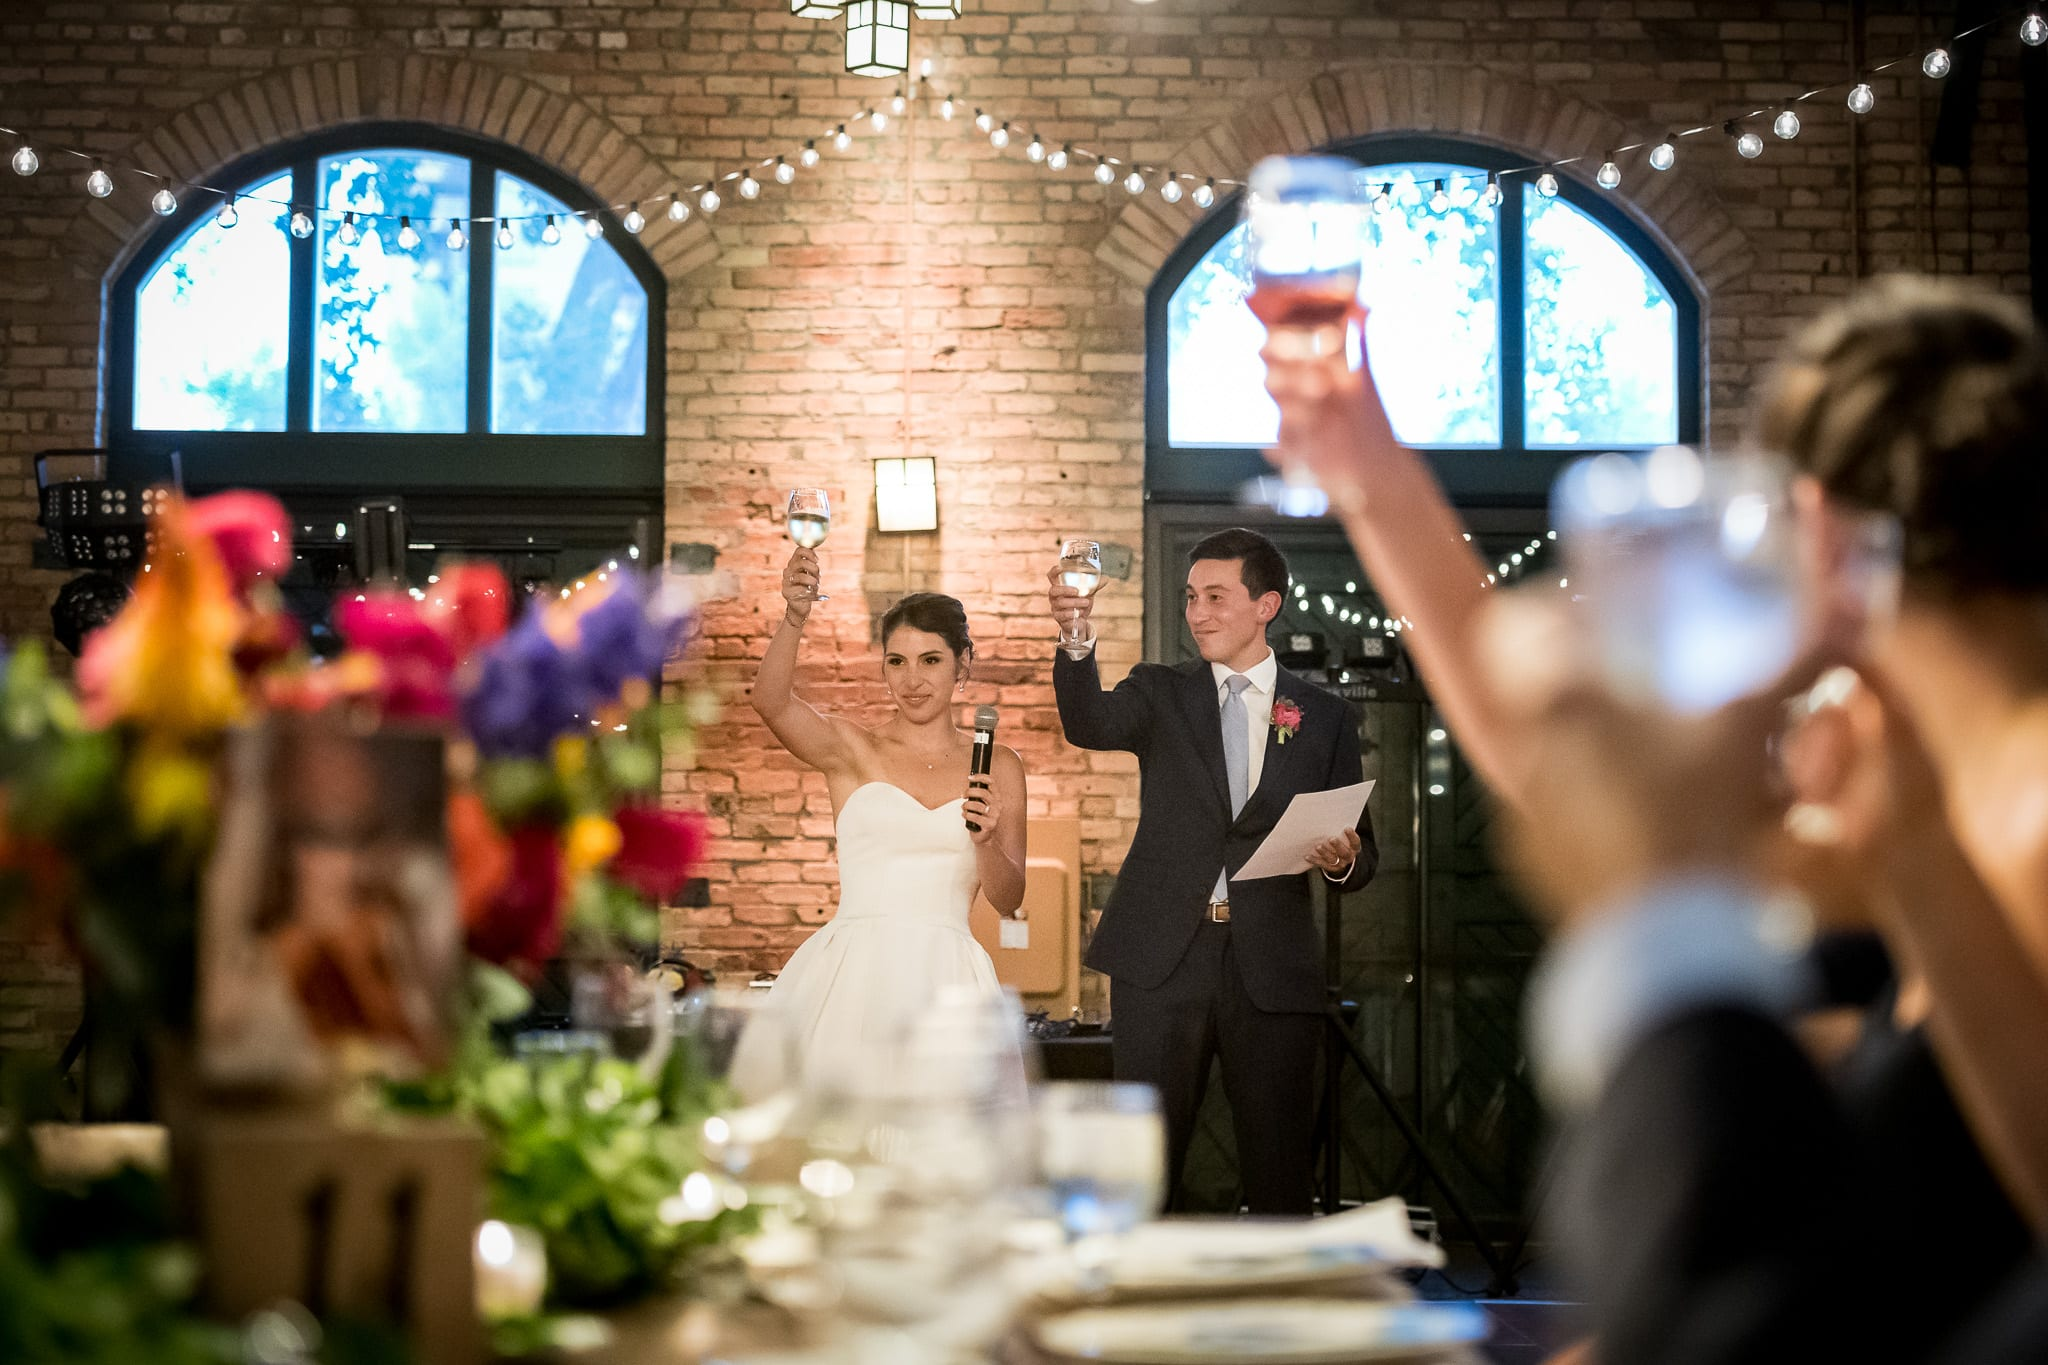 Bride and groom toast their guests with arms raised